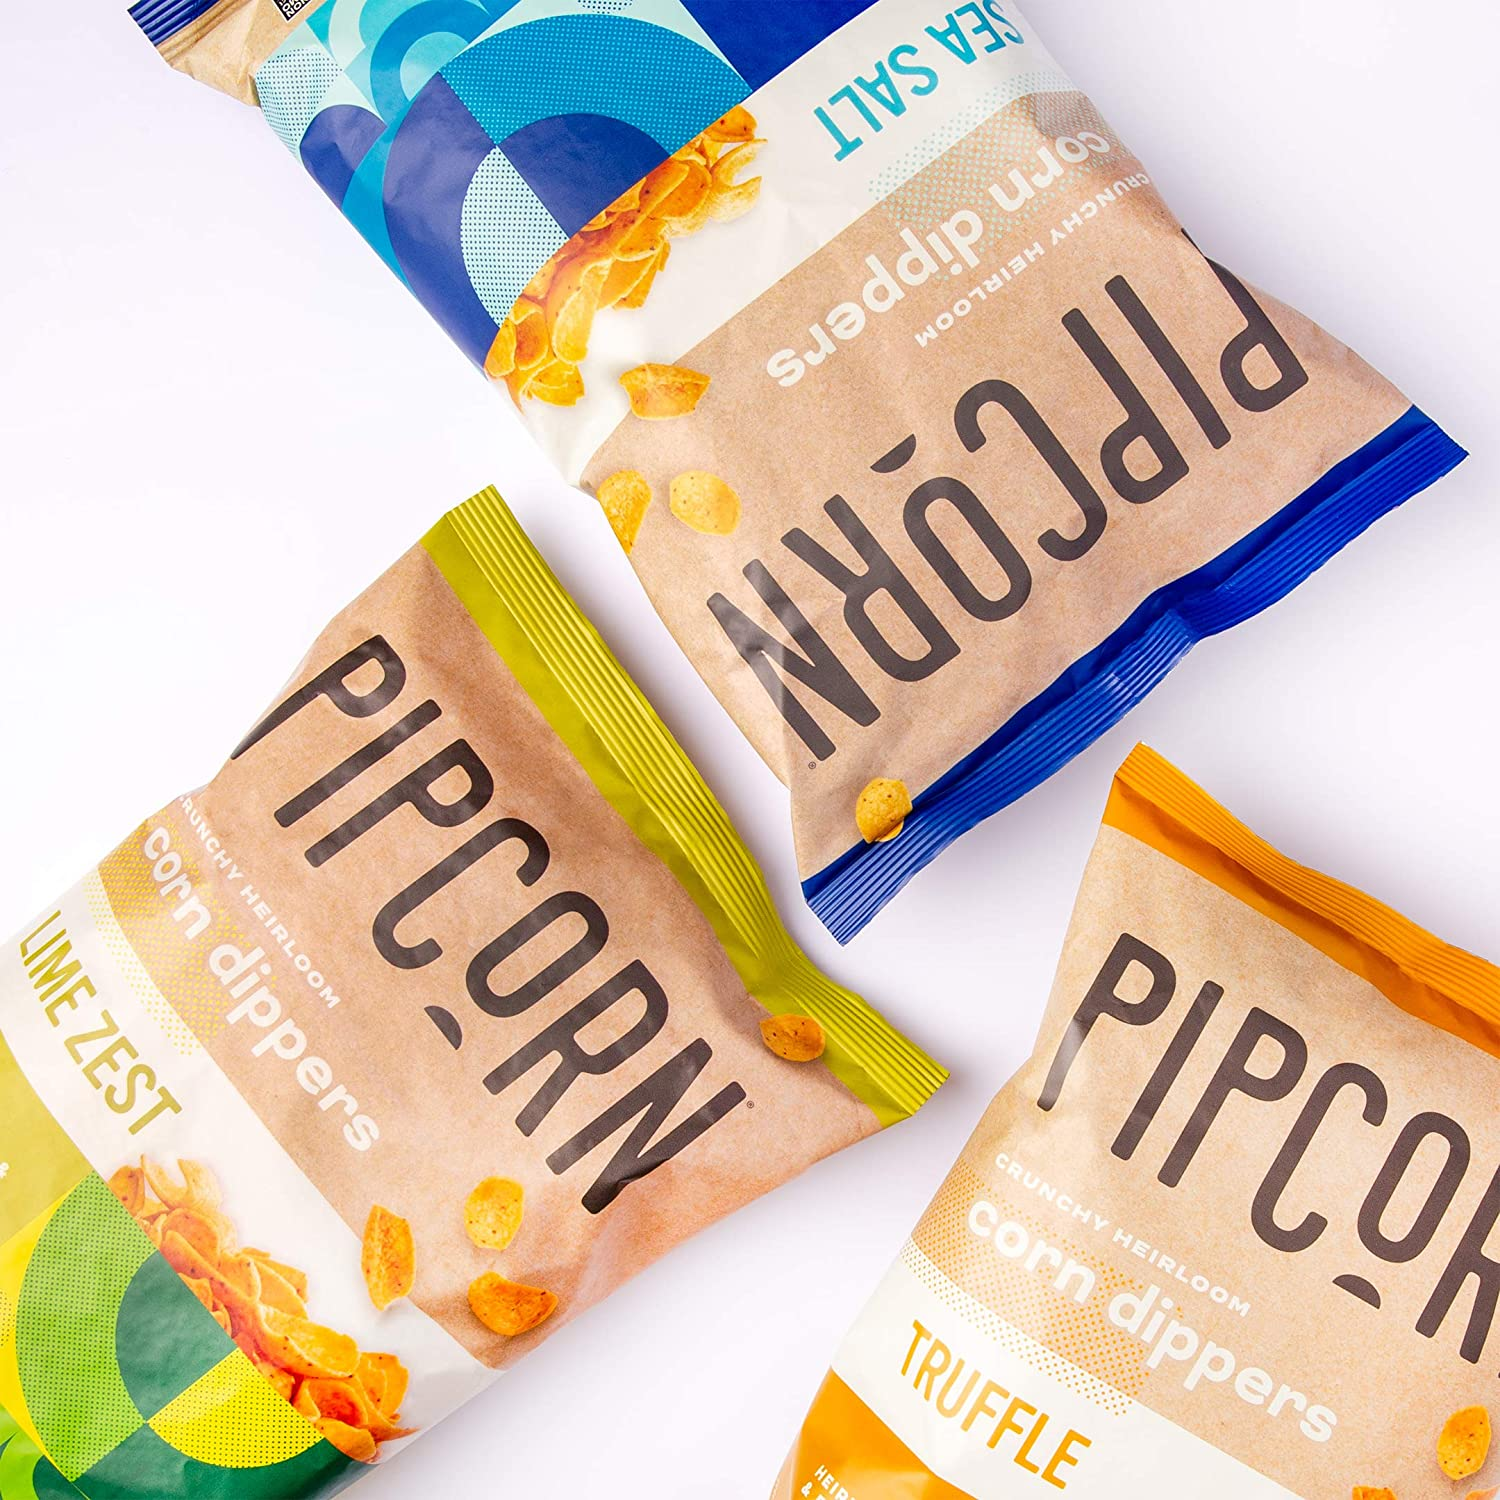 Pipcorn Heirloom Corn Dippers - Variety Pack (3 Pack of 9.5oz Bags - Sea Salt, Truffle, Lime Zest, 9.5oz Bags) - No Artificial Anything, Vegan, Gluten Free, Non-GMO Heirloom Corn